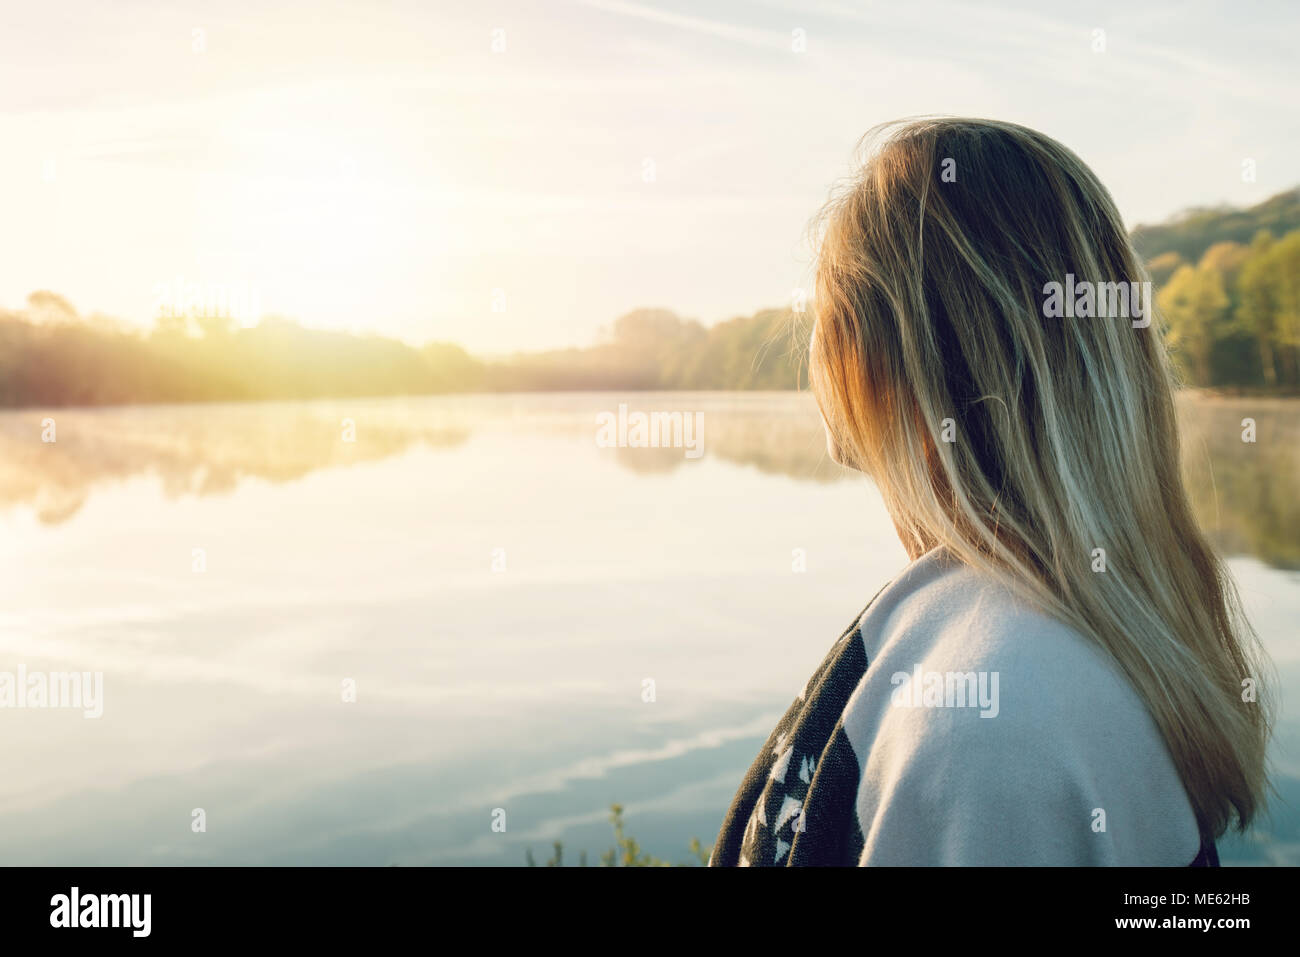 Young woman contemplating nature by the lake at sunrise, springtime, France, Europe. People travel relaxation in nature concept. Tones image - Stock Image